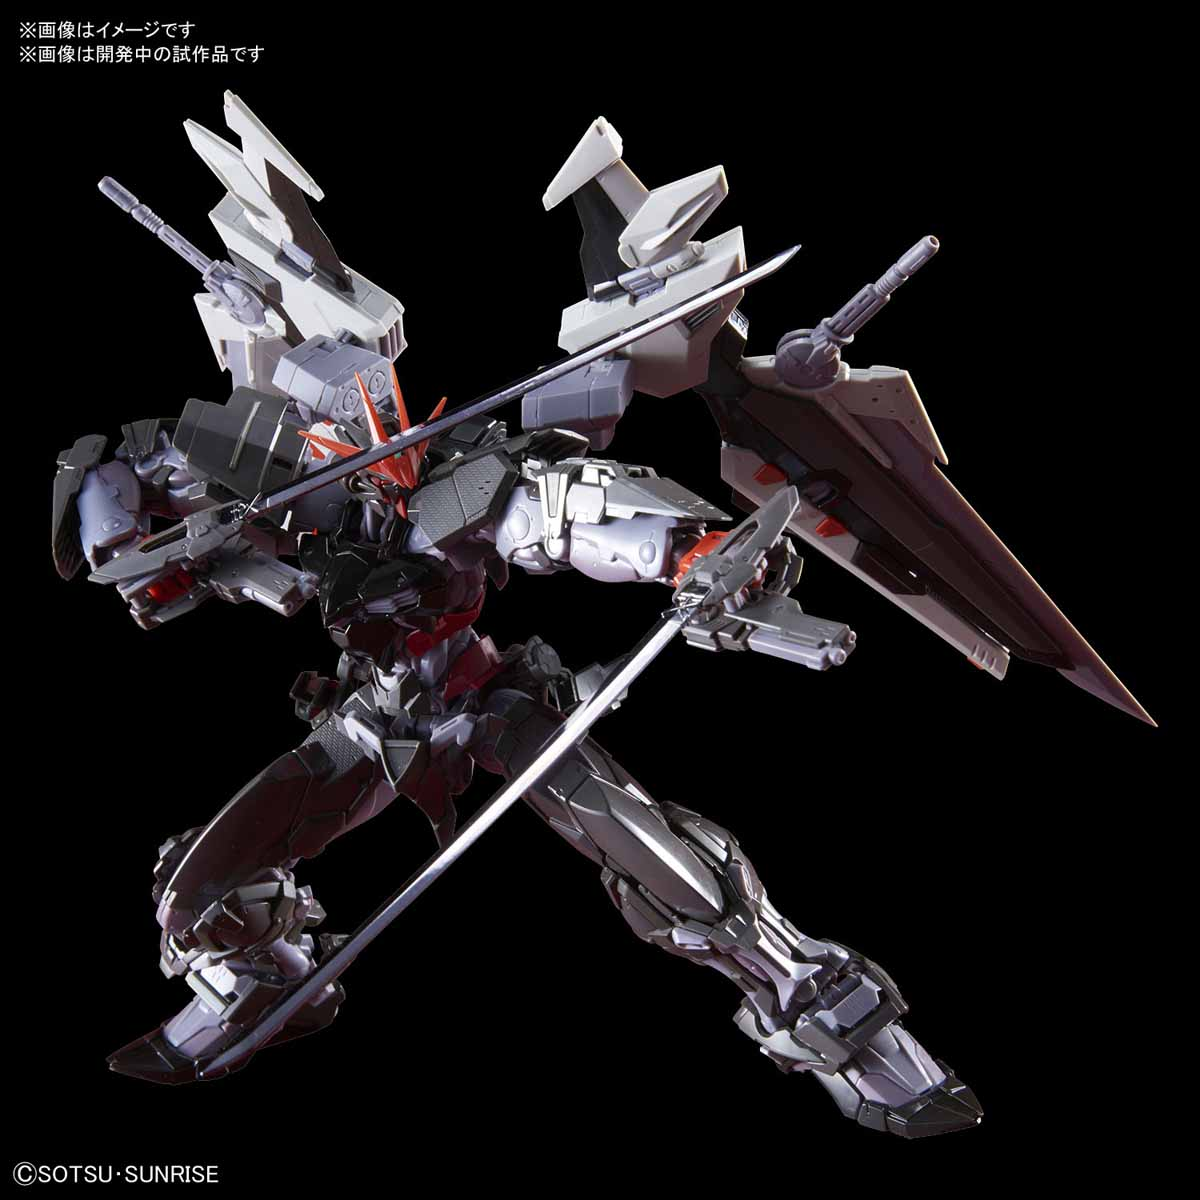 Hi-Resolution Model (HiRM) 1/100 Gundam Astray Noir: official images,info